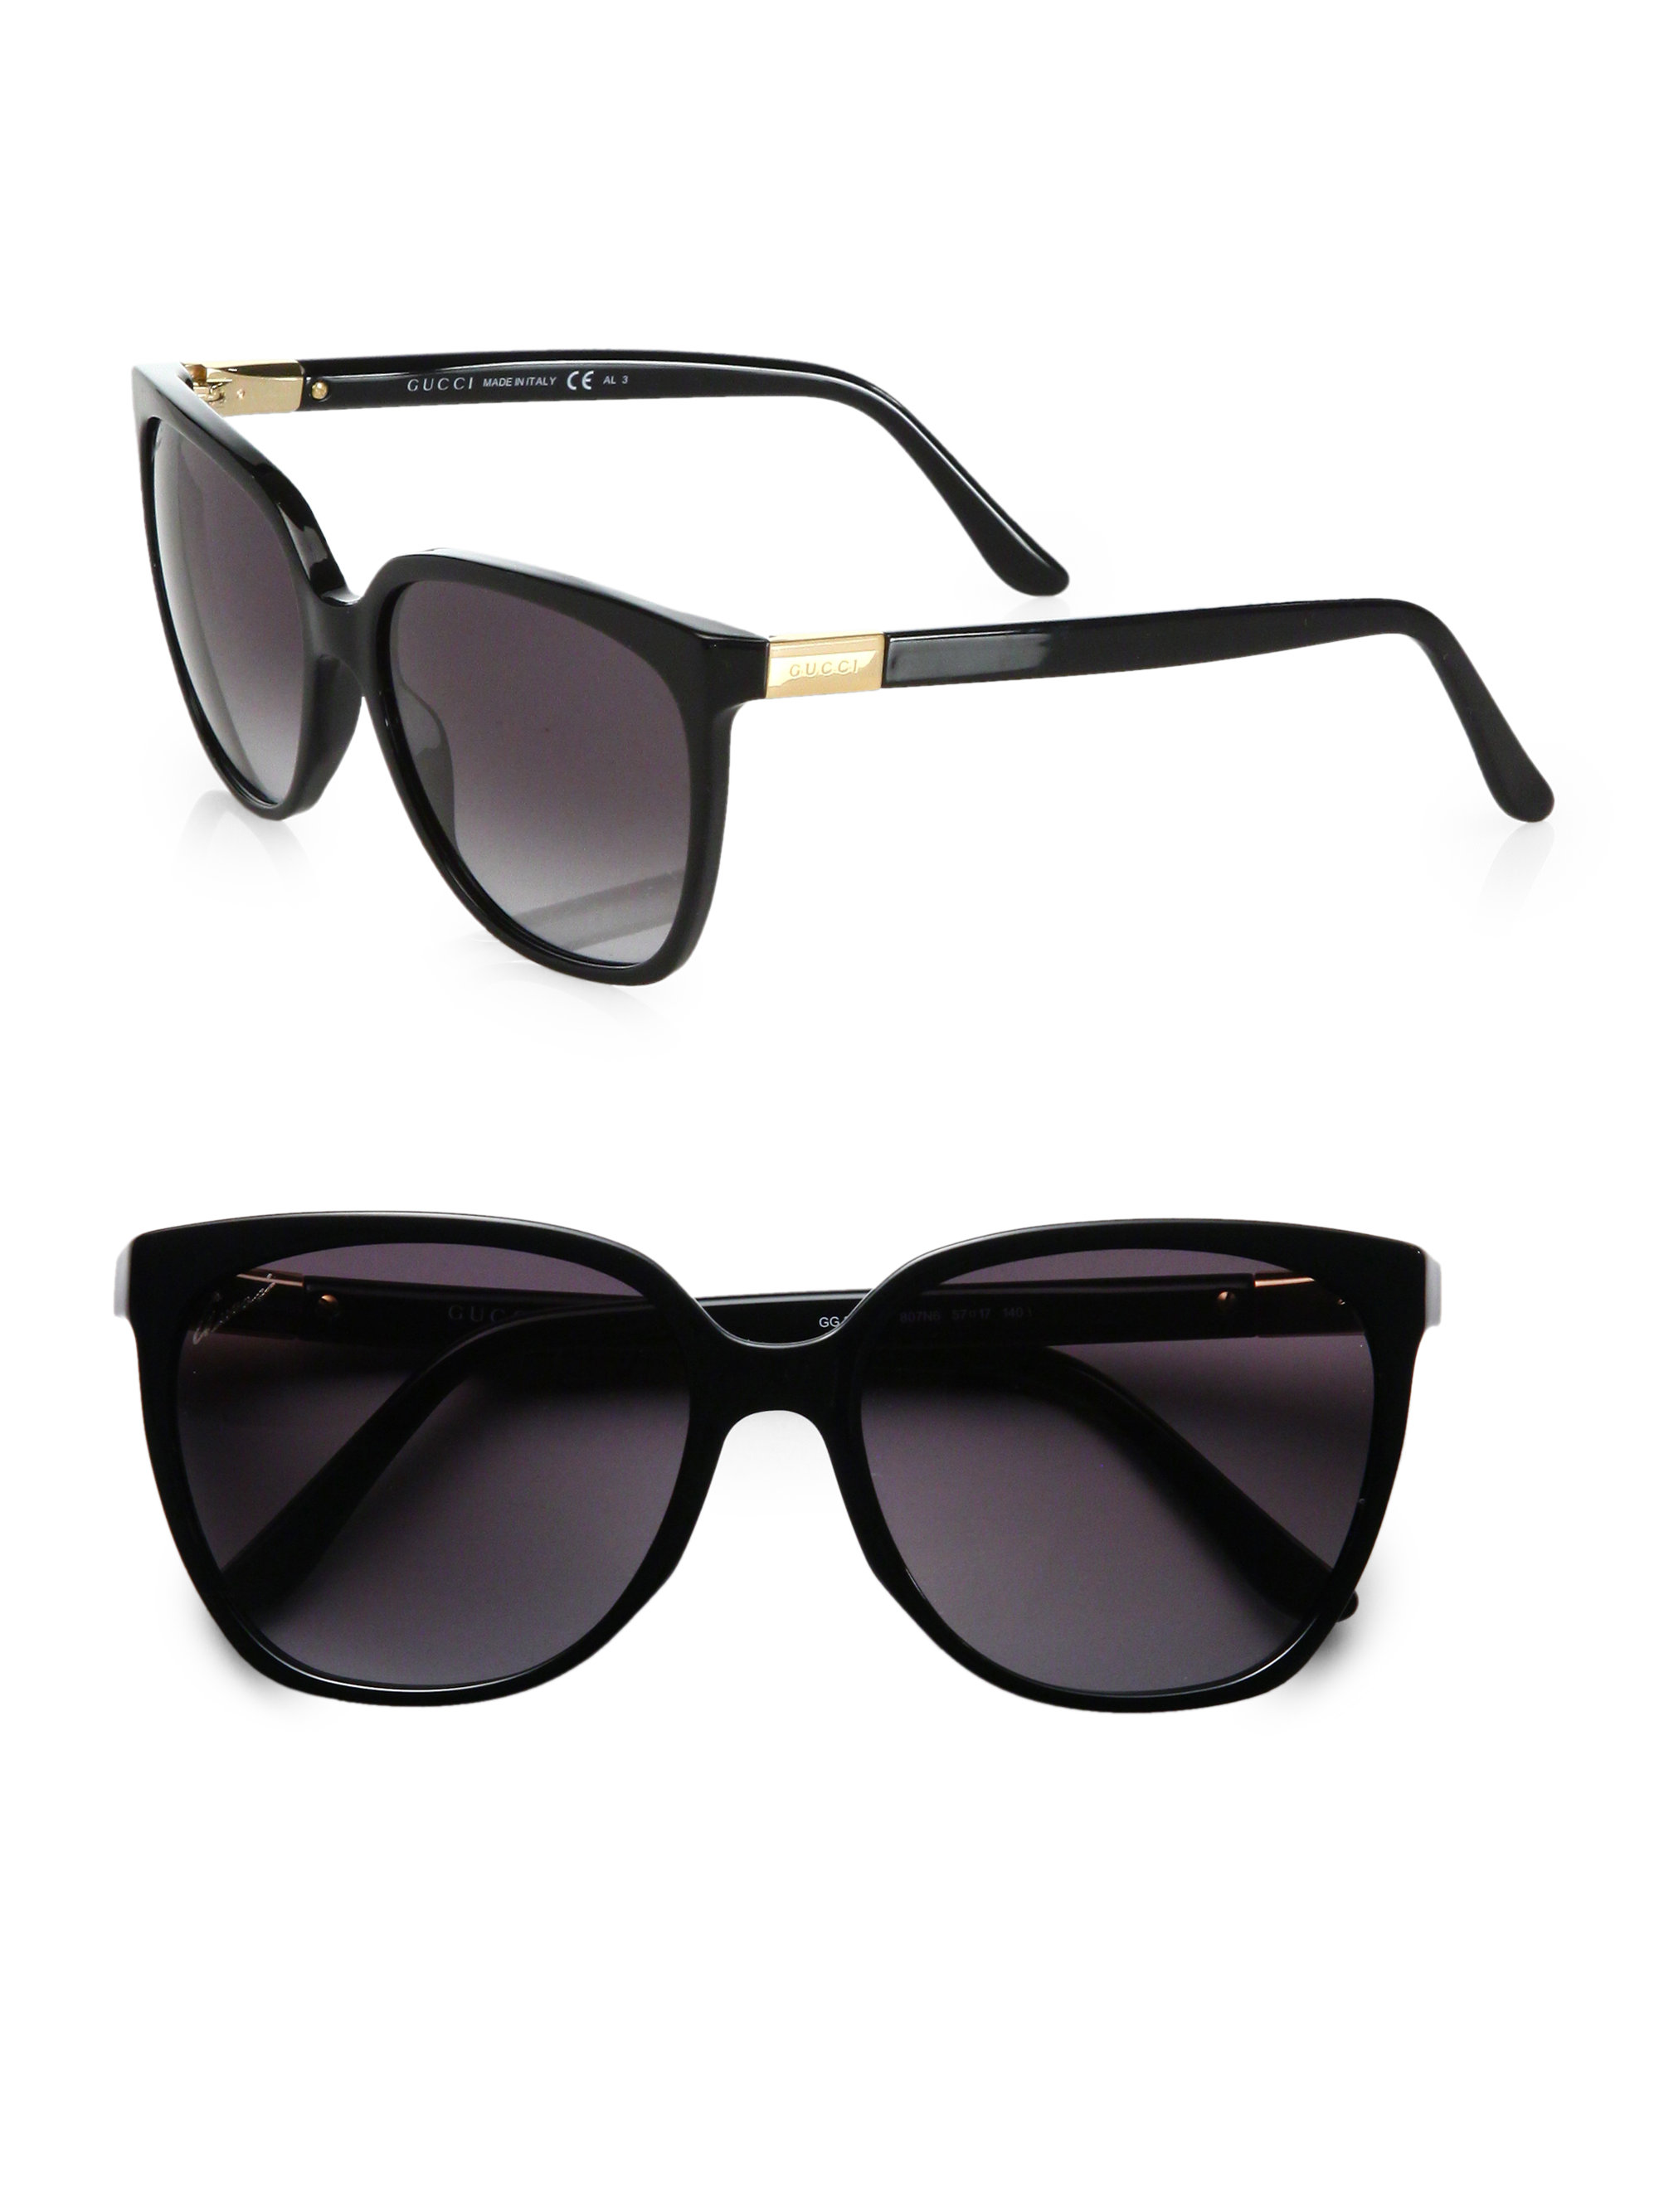 Gucci Eyewear Collection Deluxe 2012-2013  |Gucci Sunglasses Women 2013